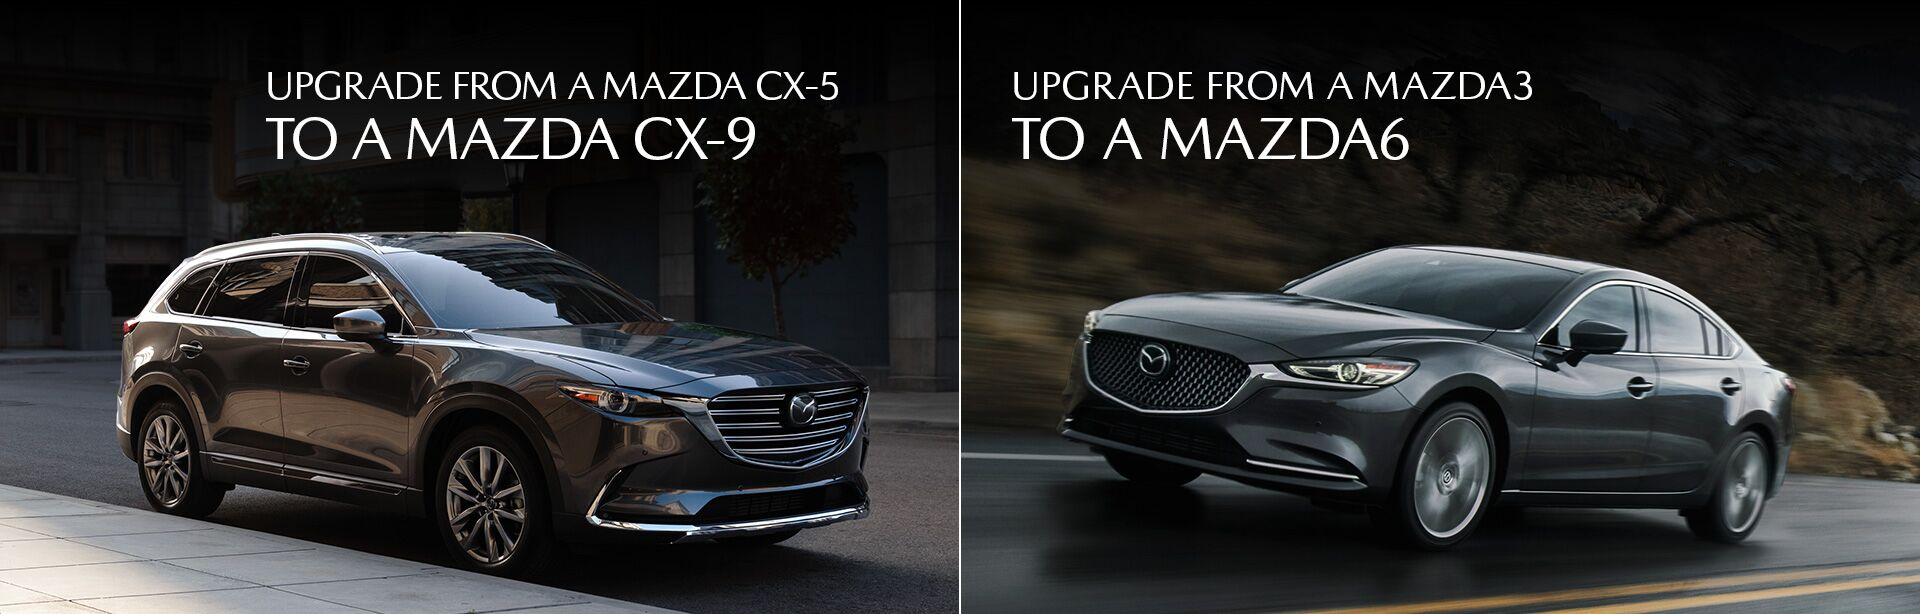 Upgrade Your Mazda